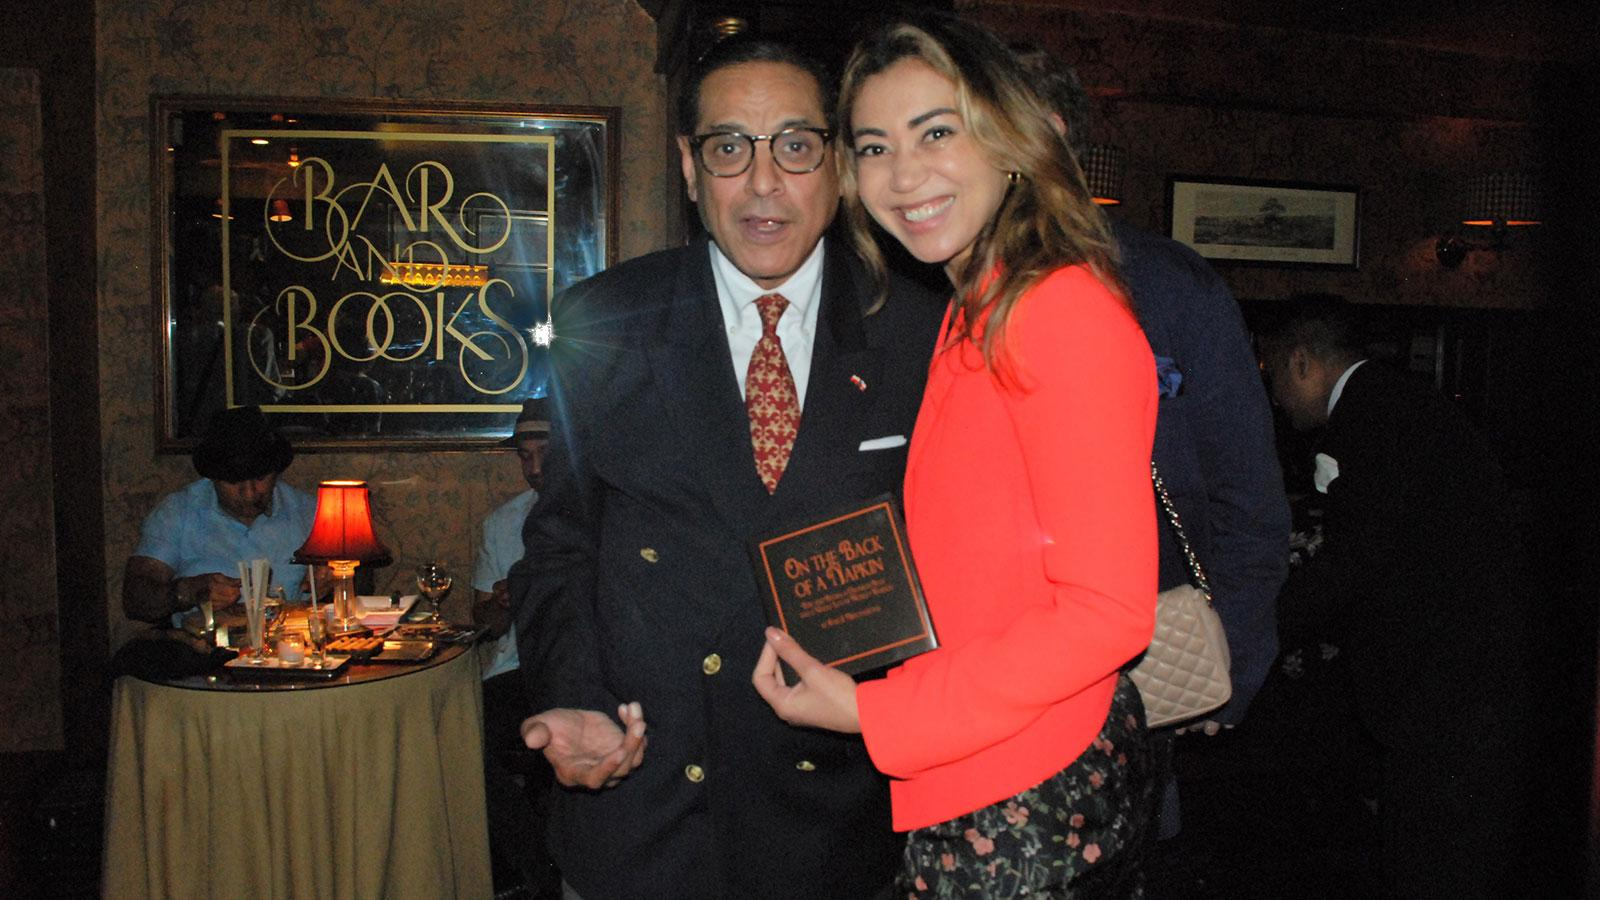 Bar and Books owner Raju S. Mirchandani with guest Elena Cavalcante.